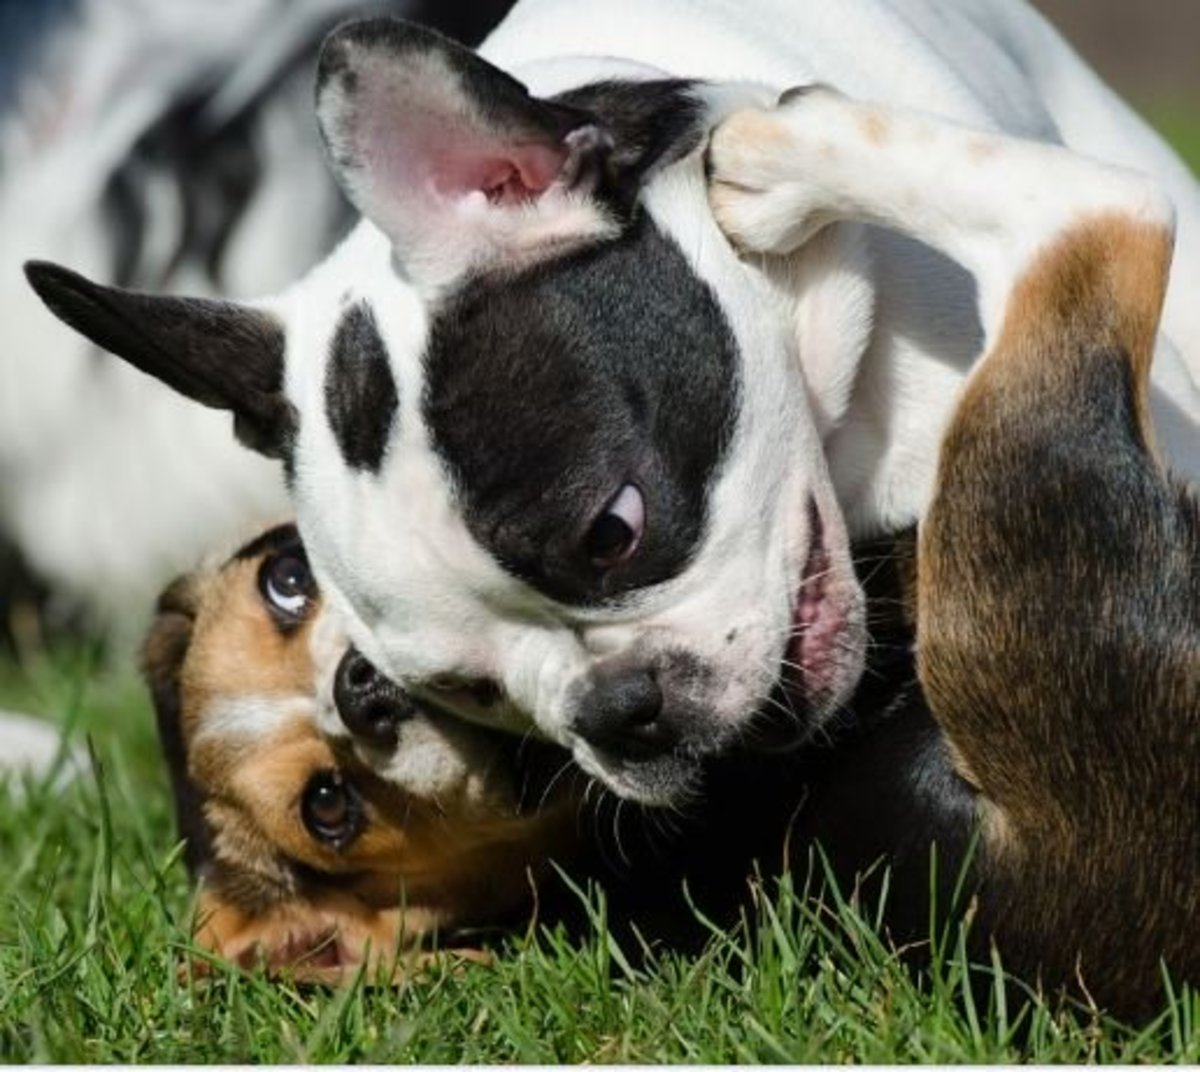 Puppies tend to play rough with one another.